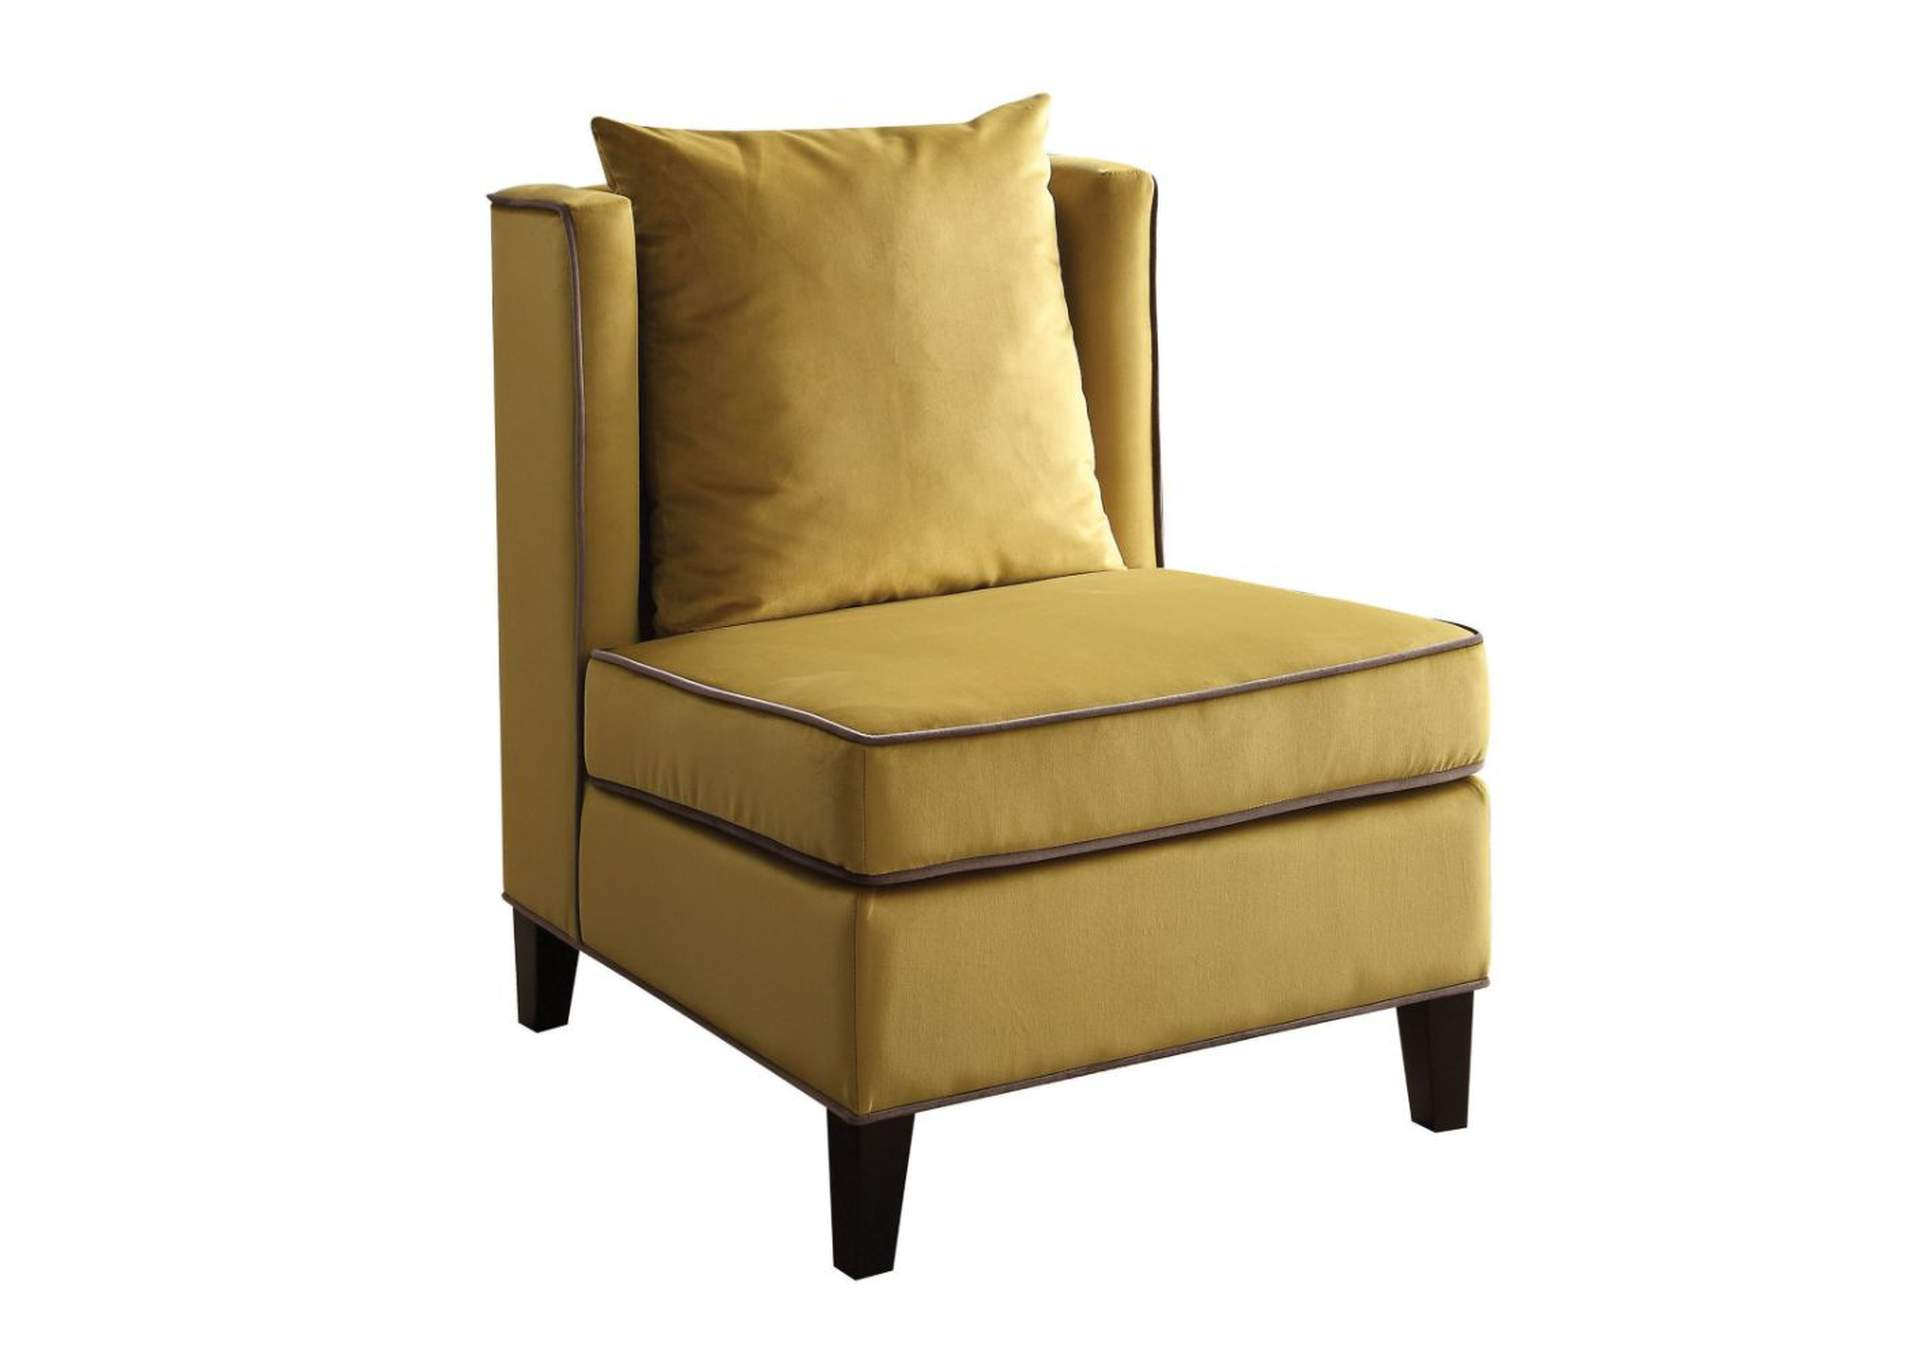 Ozella Chartreuse Yellow Velvet Accent Chair,Acme